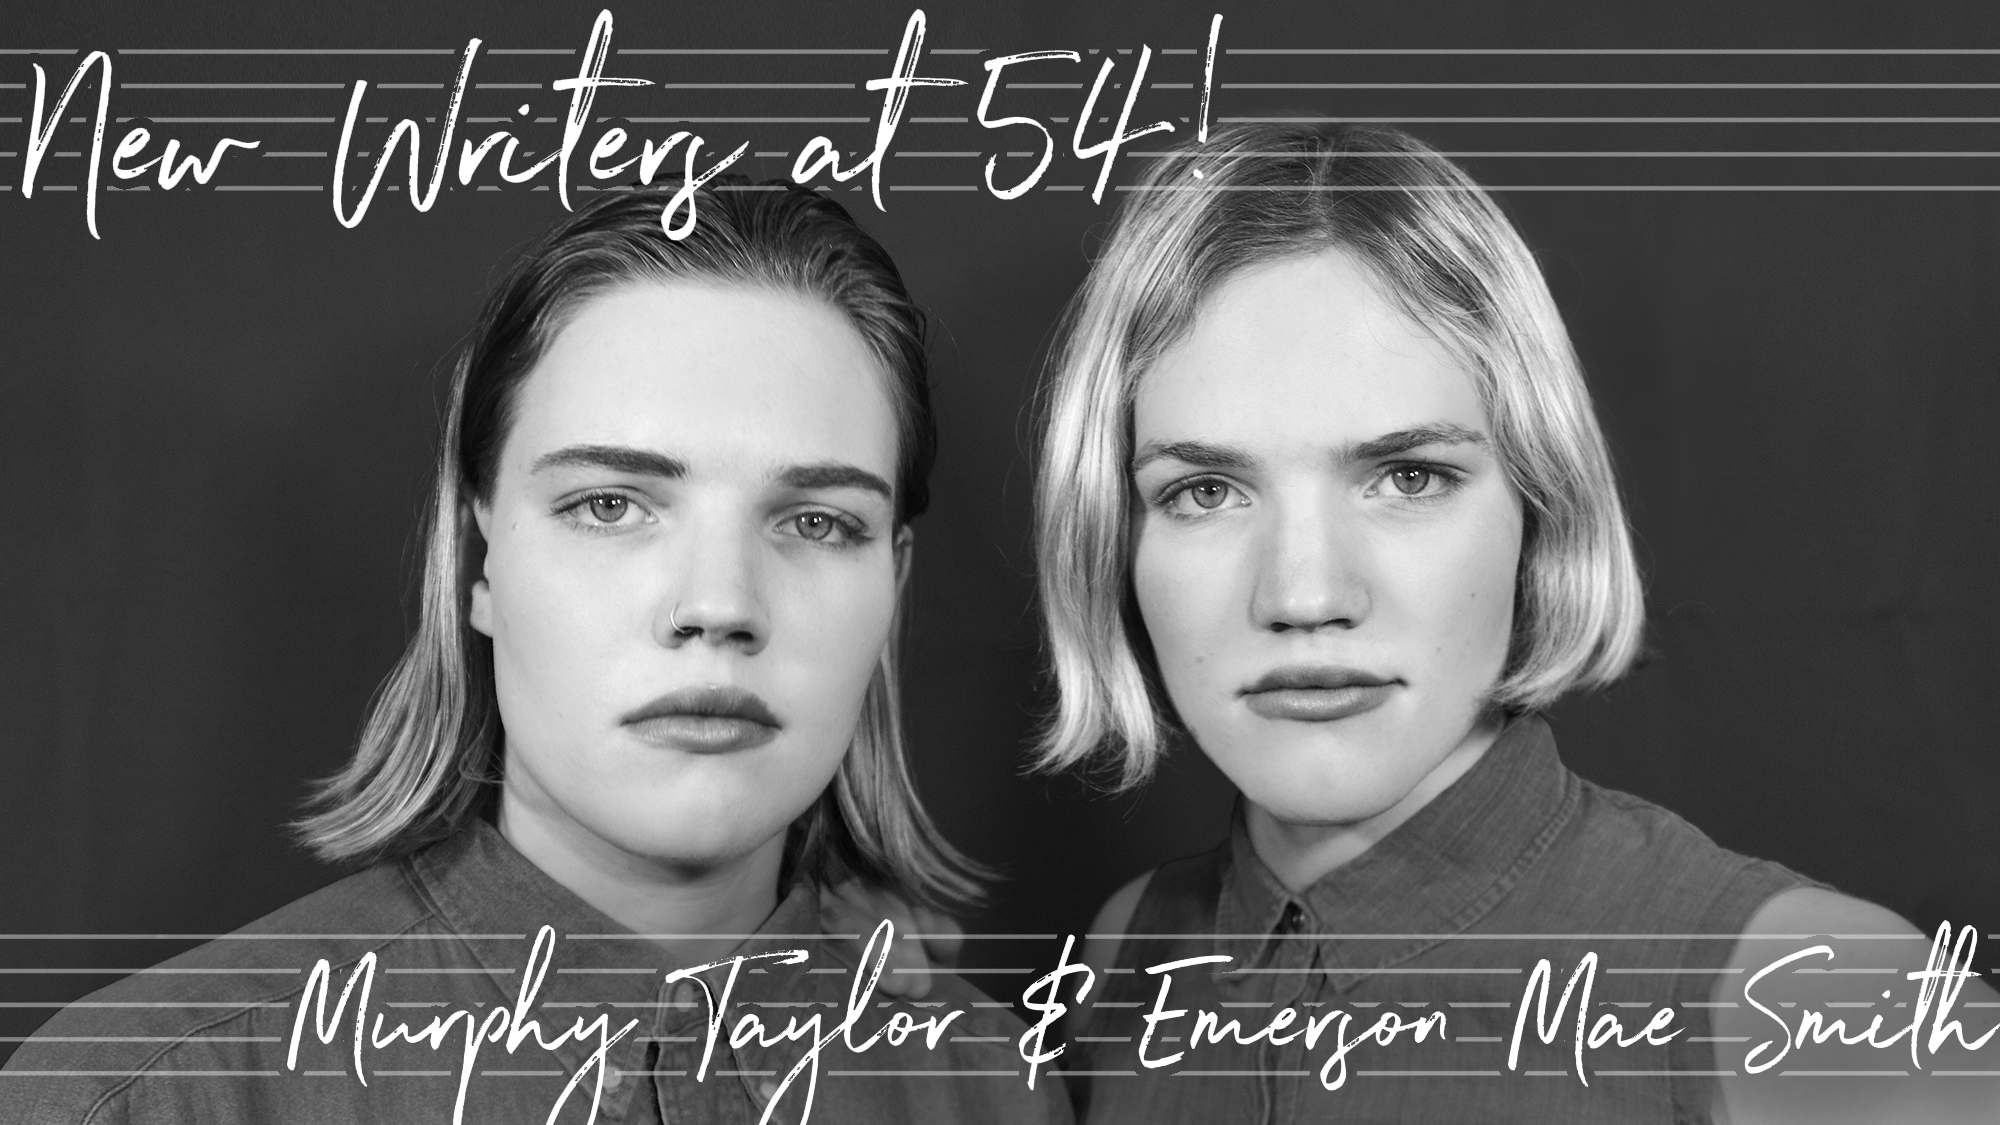 New Writers at 54! Murphy Taylor and Emerson Mae Smith